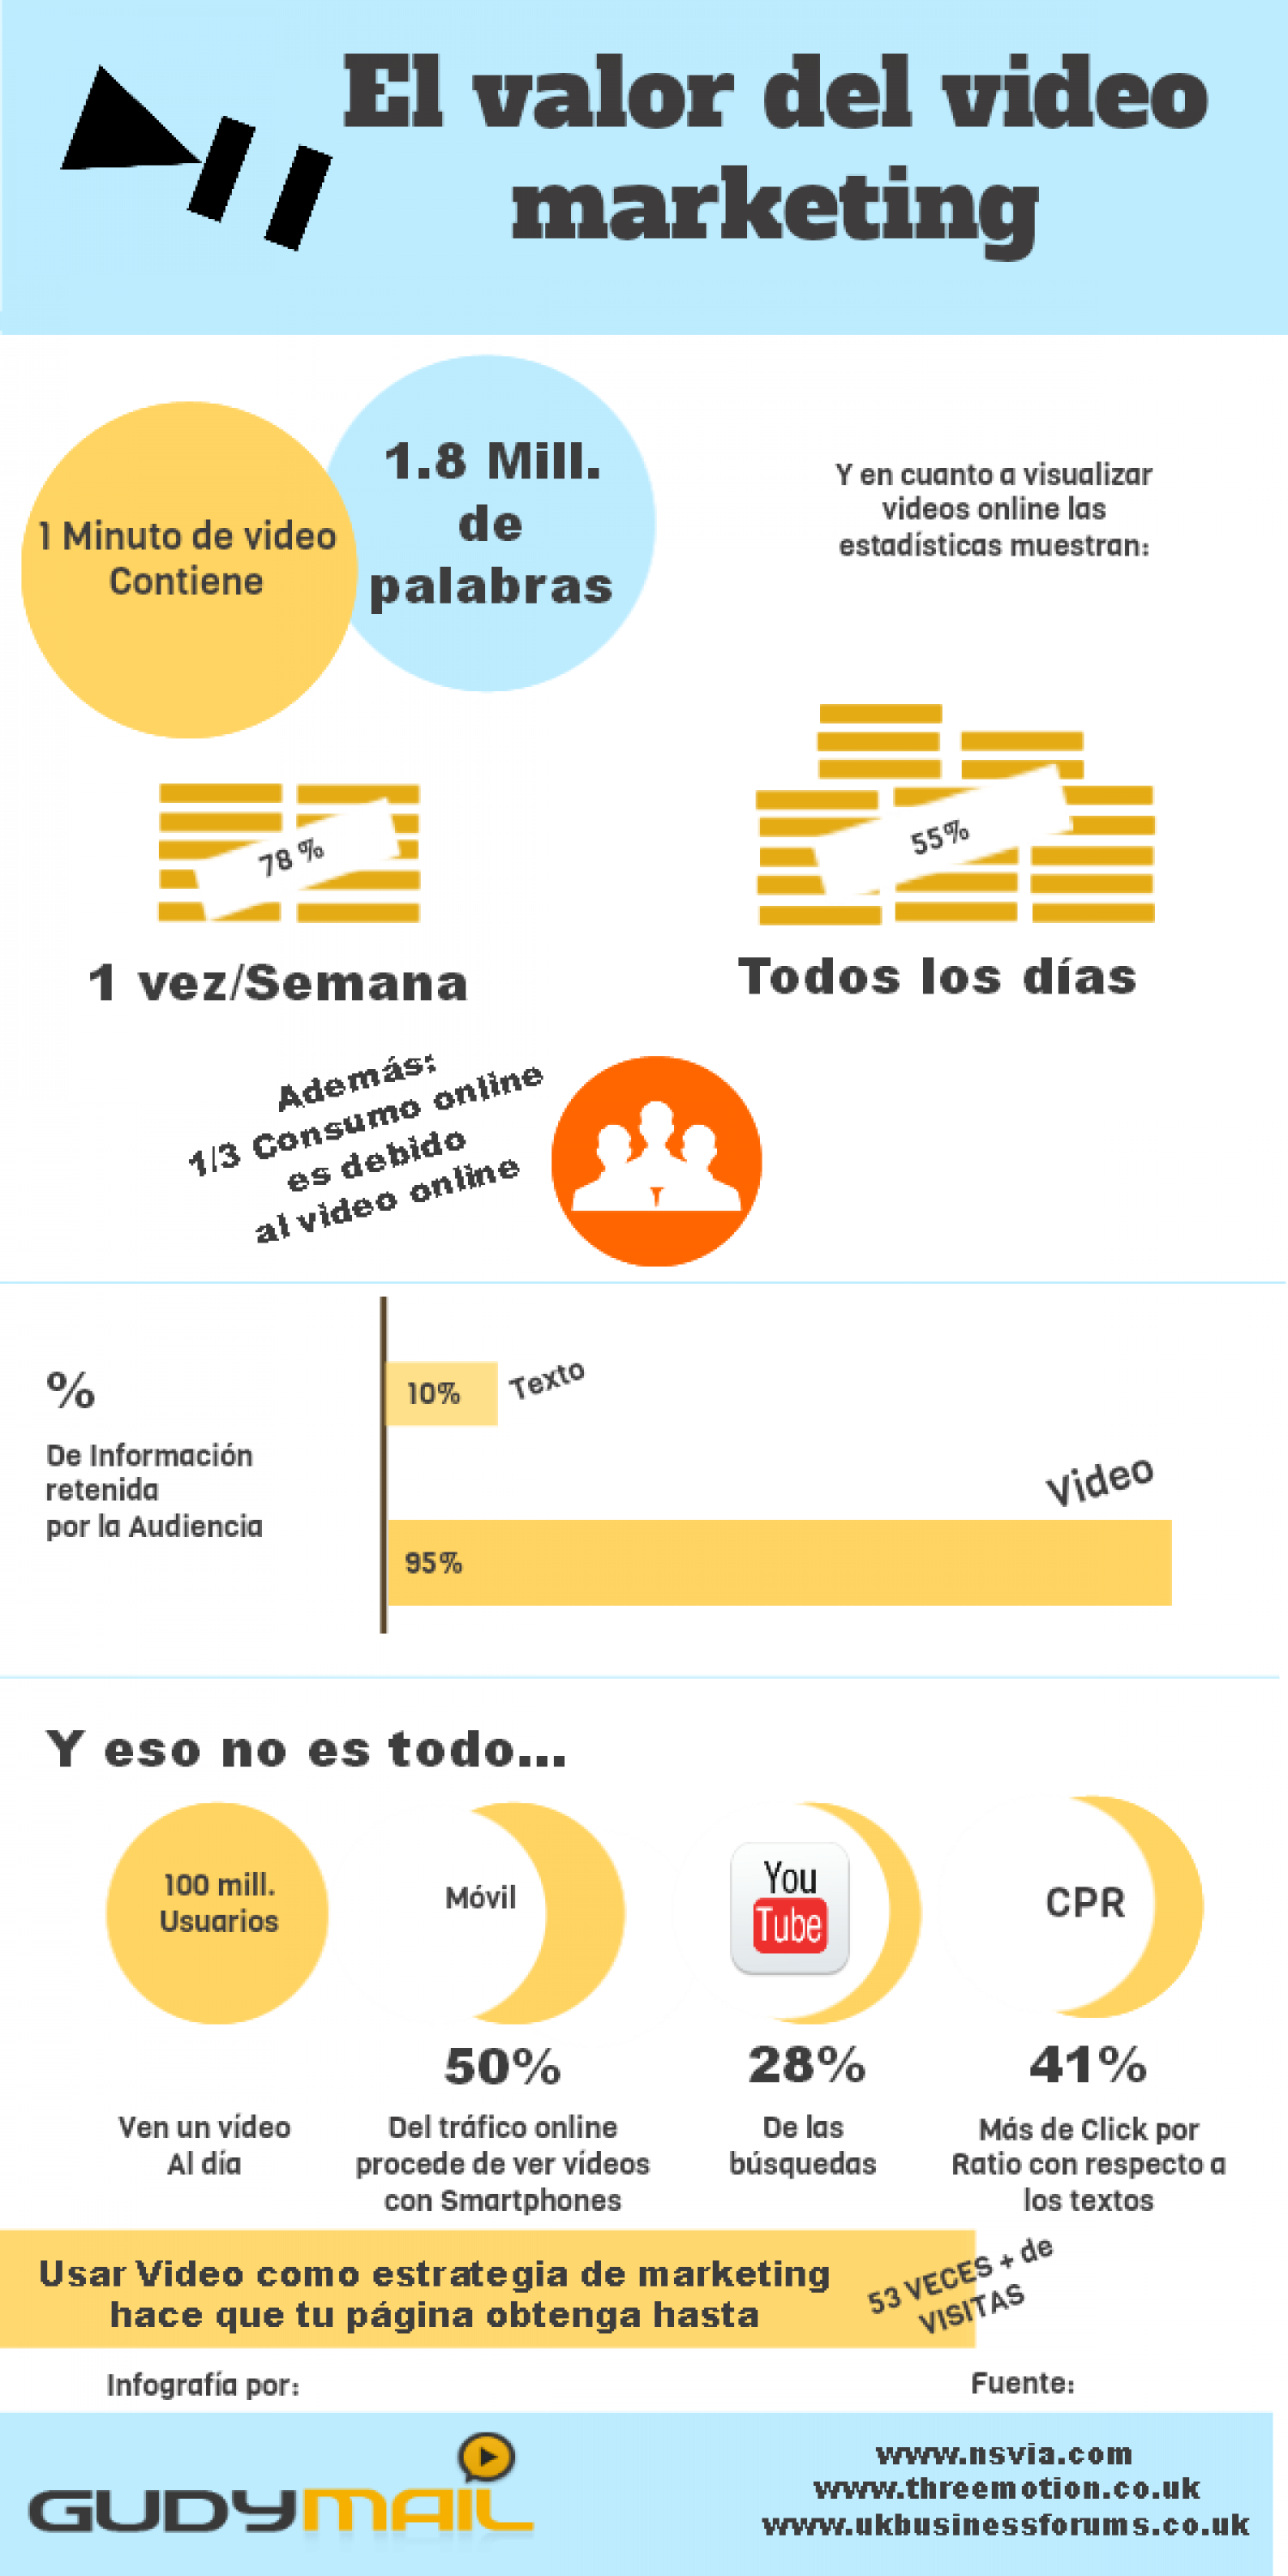 El valor del vídeo Marketing Infographic